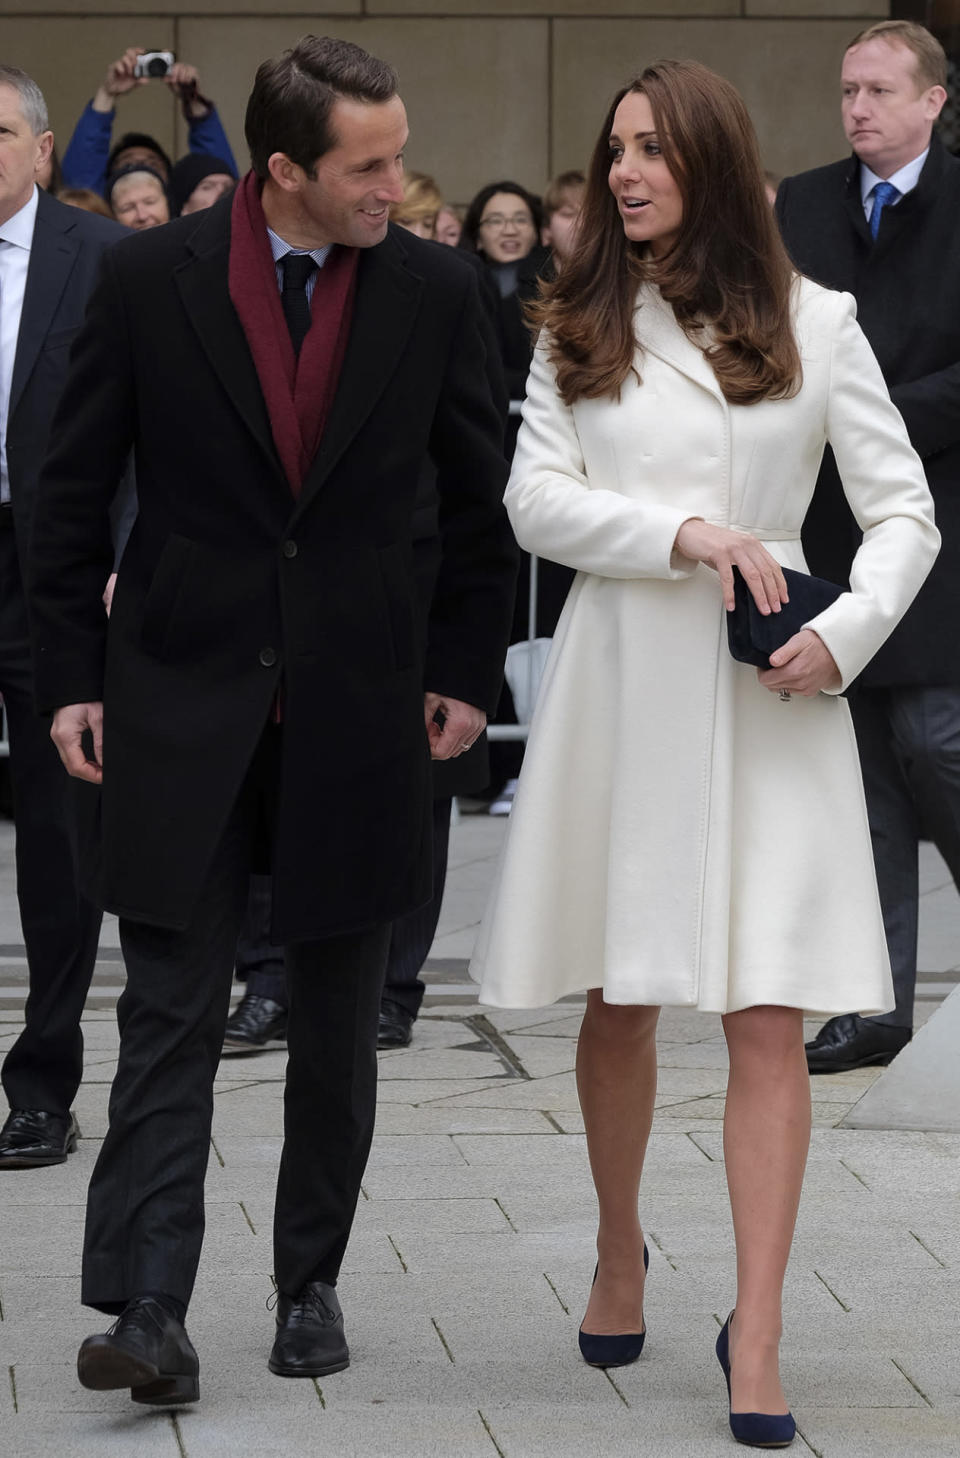 <p>Kate wore another Max Mara coat - this time, in stark white - for a Portsmouth engagement. As before, she paired the look with Jimmy Choos and a suede L.K. Bennett clutch. </p><p><i>[Photo: PA]</i></p>